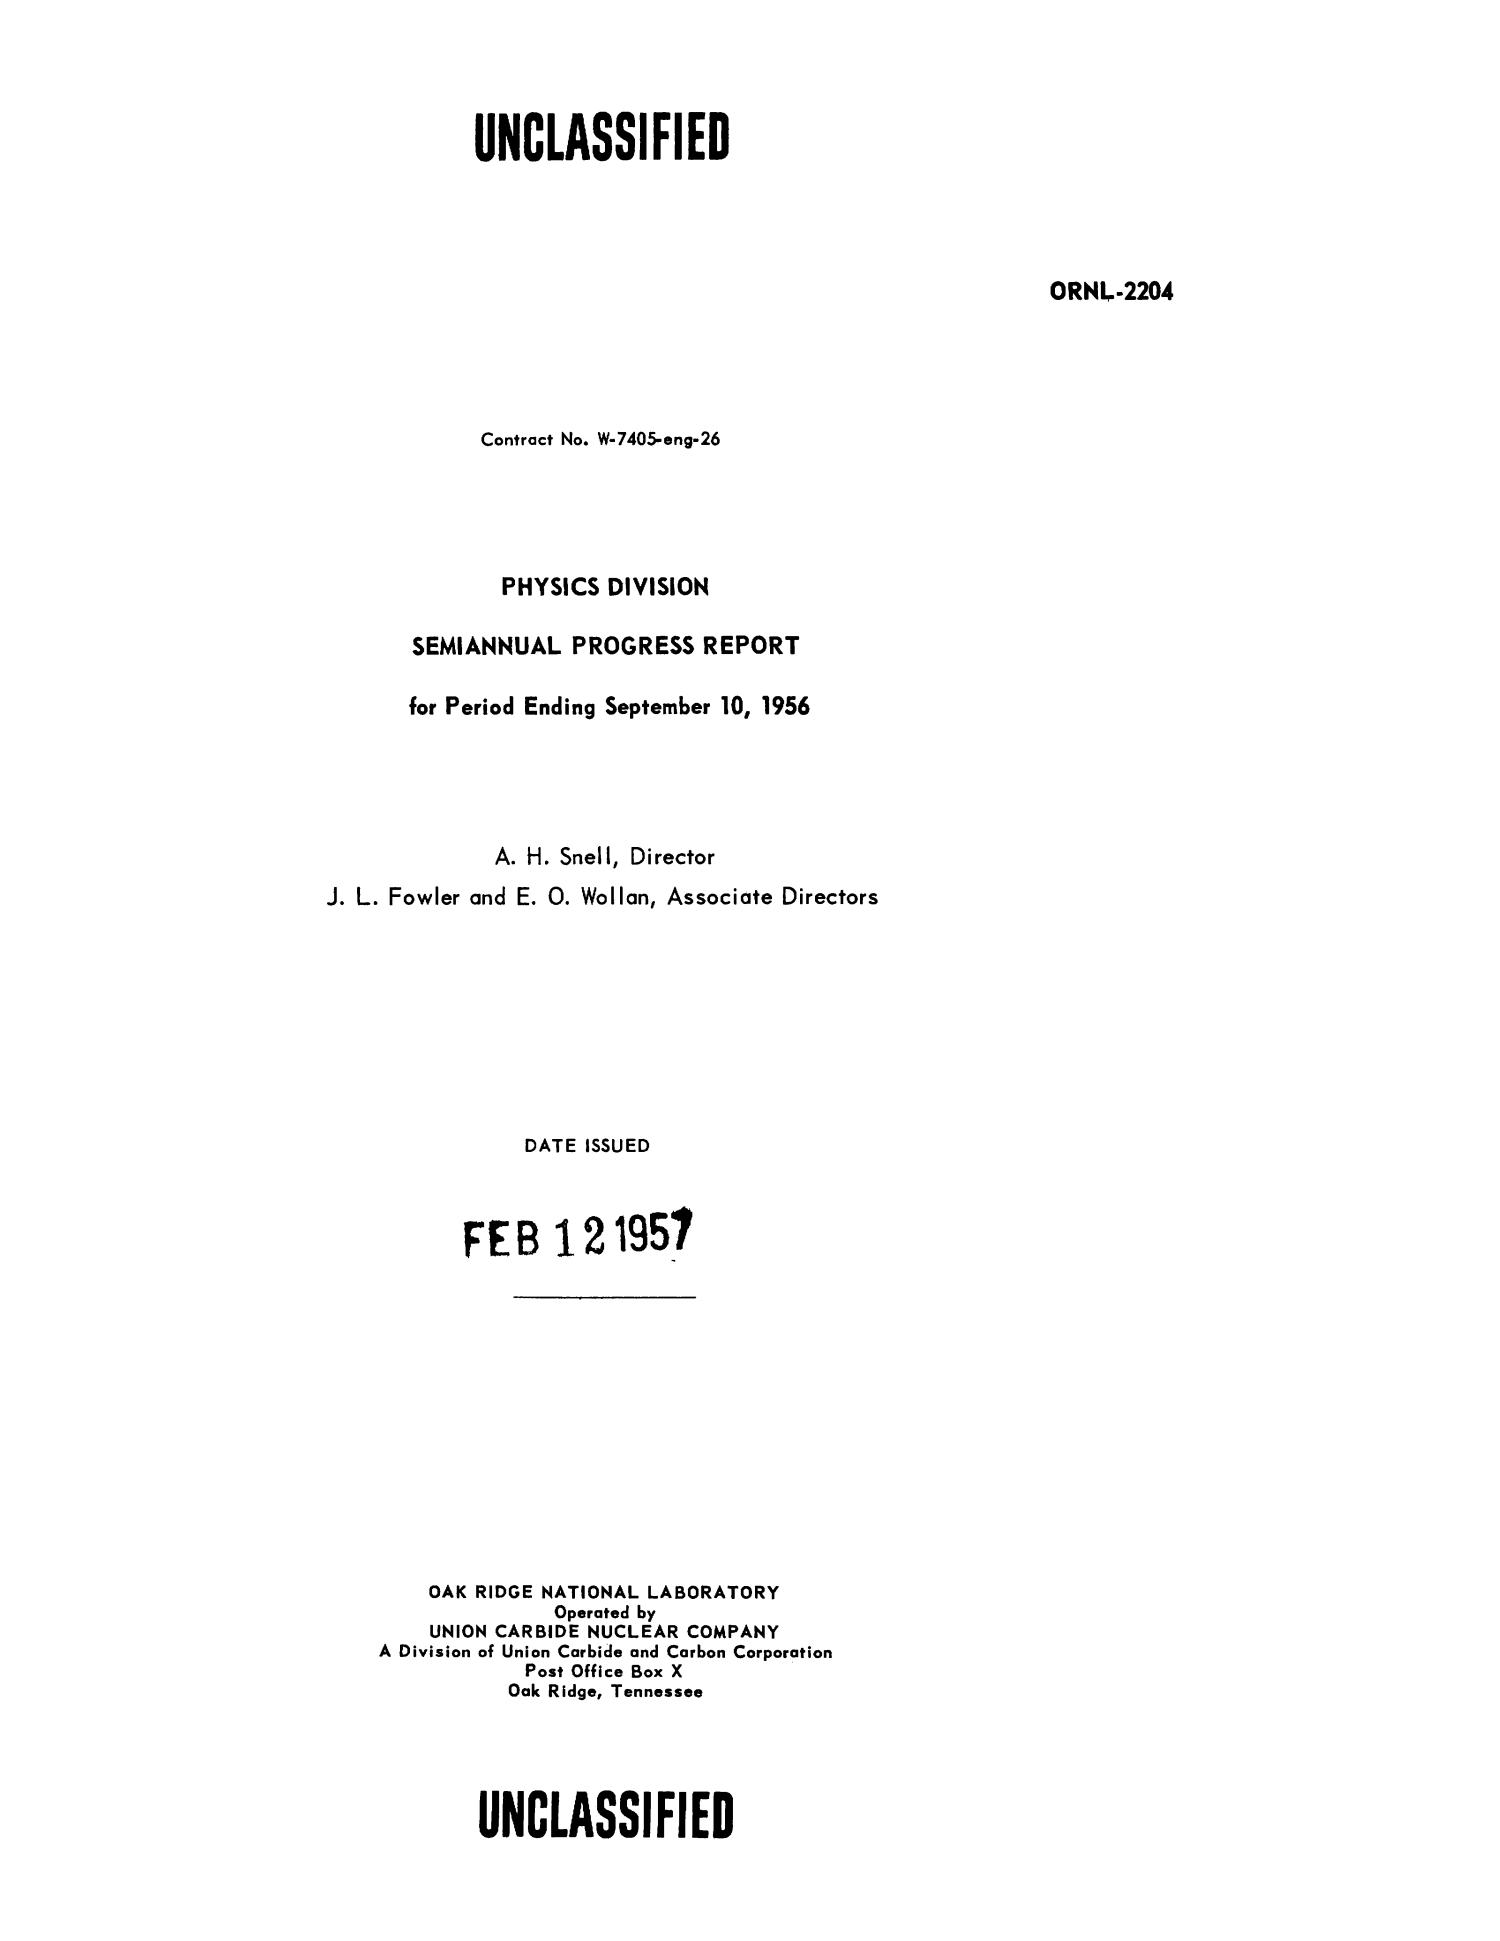 Physics Division Semiannual Progress Report for Period Ending September 10, 1956                                                                                                      Title Page